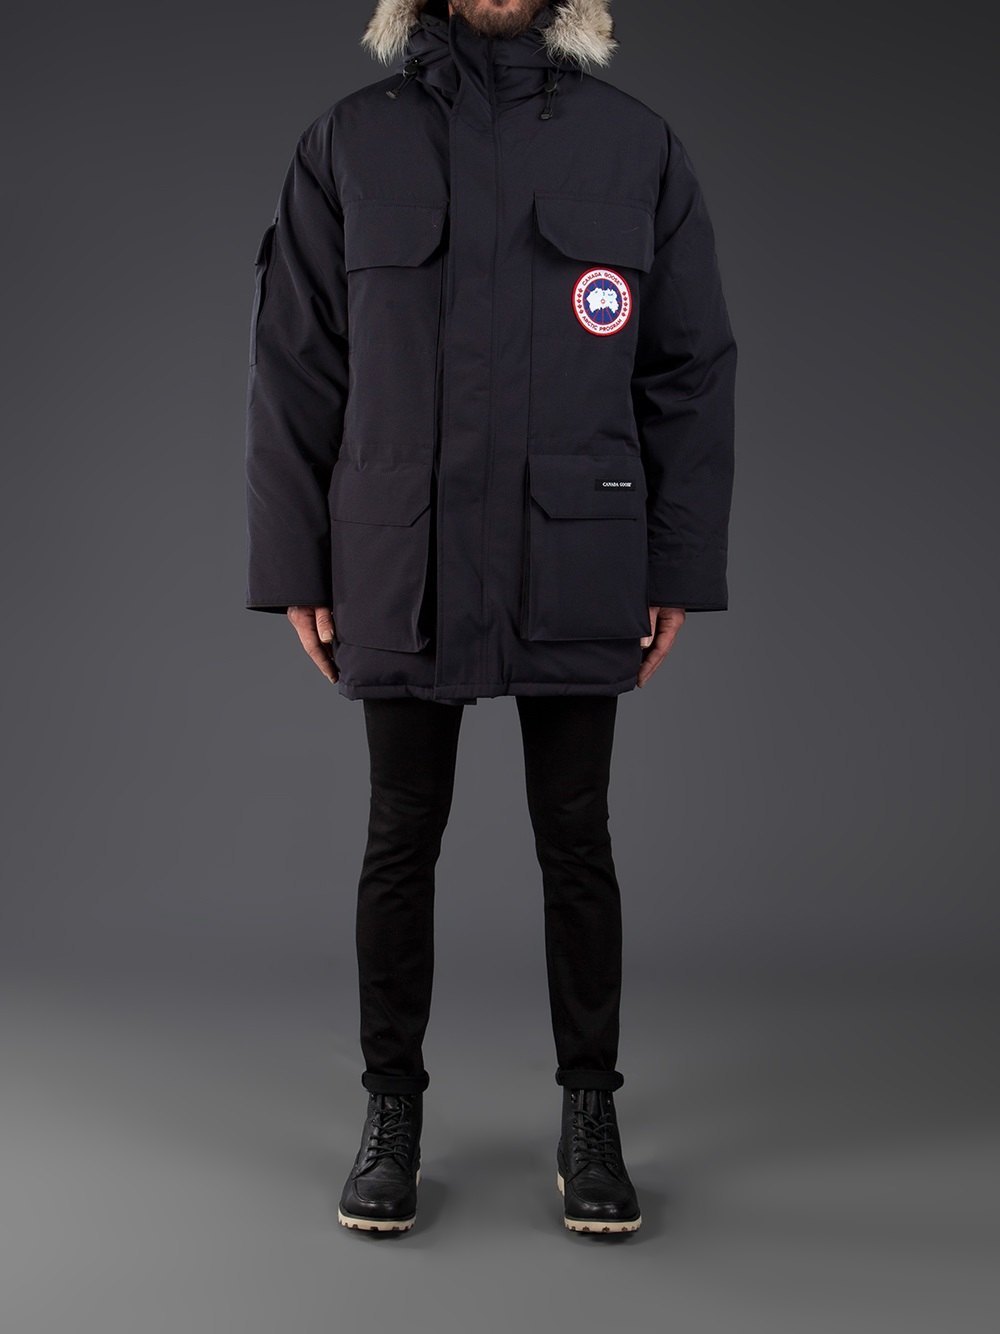 Canada Goose toronto replica fake - Canada goose 'expedition' Parka in Blue for Men | Lyst